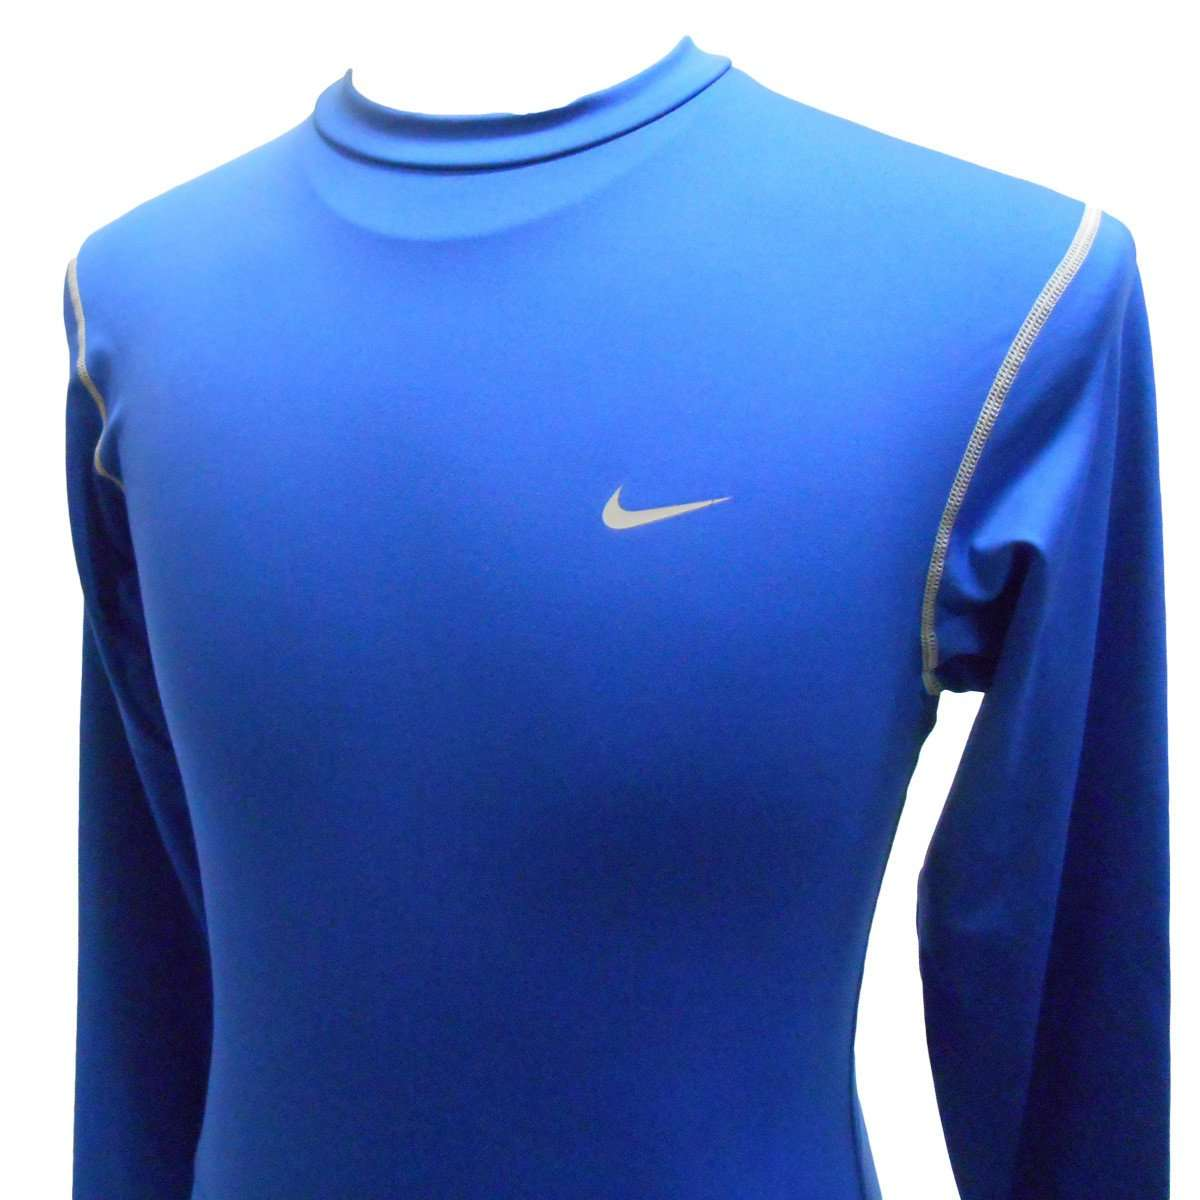 Nike Pro Dri Fit Long Sleeve Training Shirt League Outfitters Combat Base Layer Sleeves